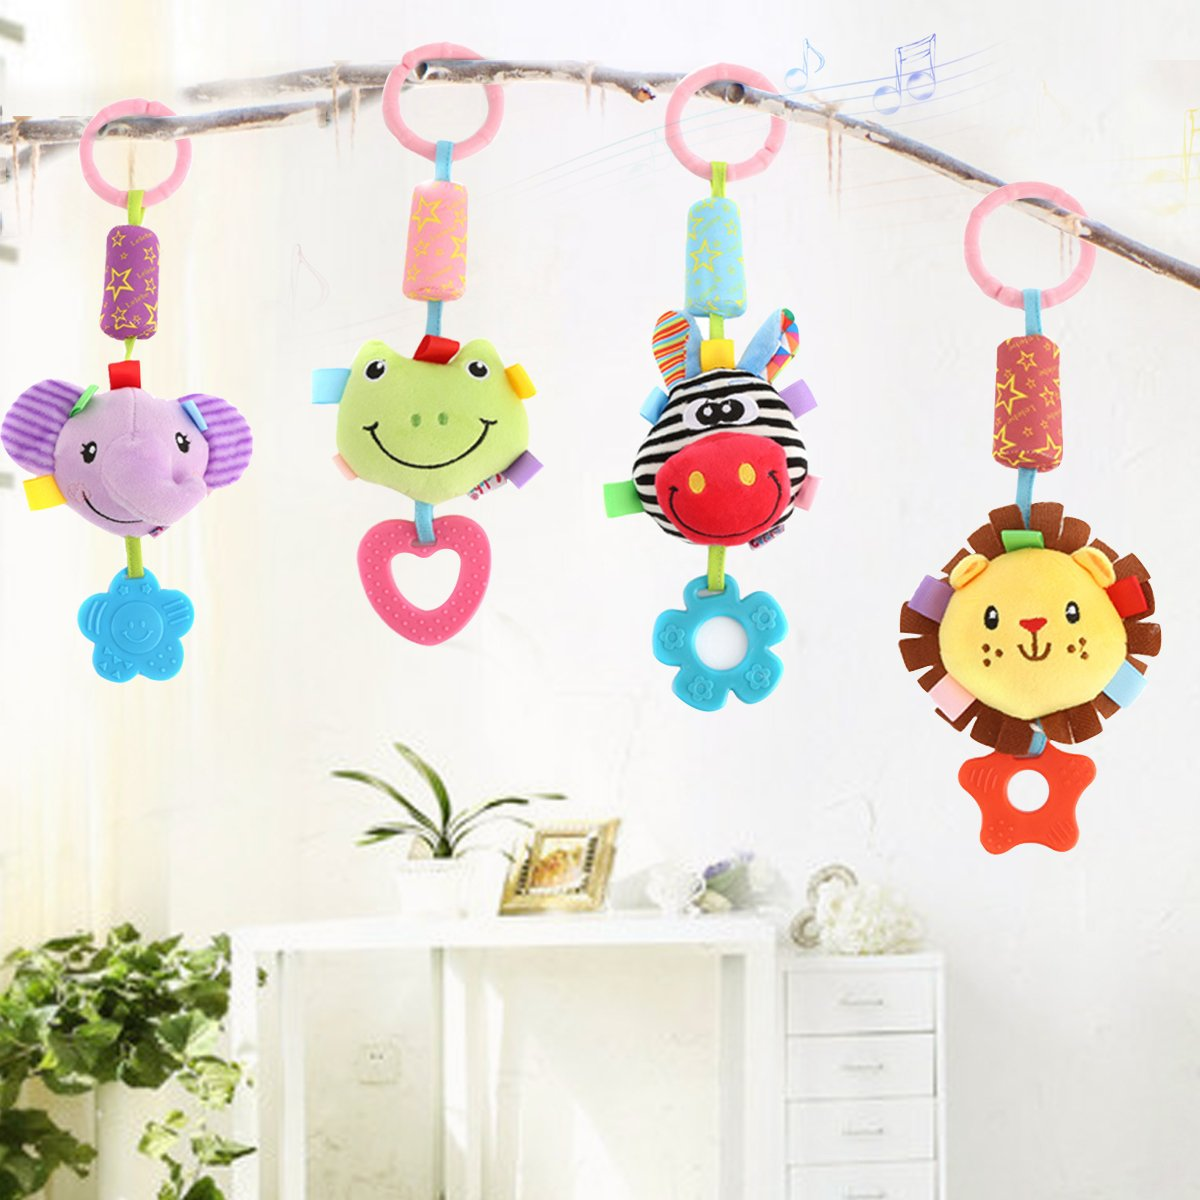 4 Pack Washable Infant Stroller Toys with Cute Wind Chime and Plush Squeak Crib Toys for Baby Boys and Girls DOMIRE Baby Rattle Hanging Toys